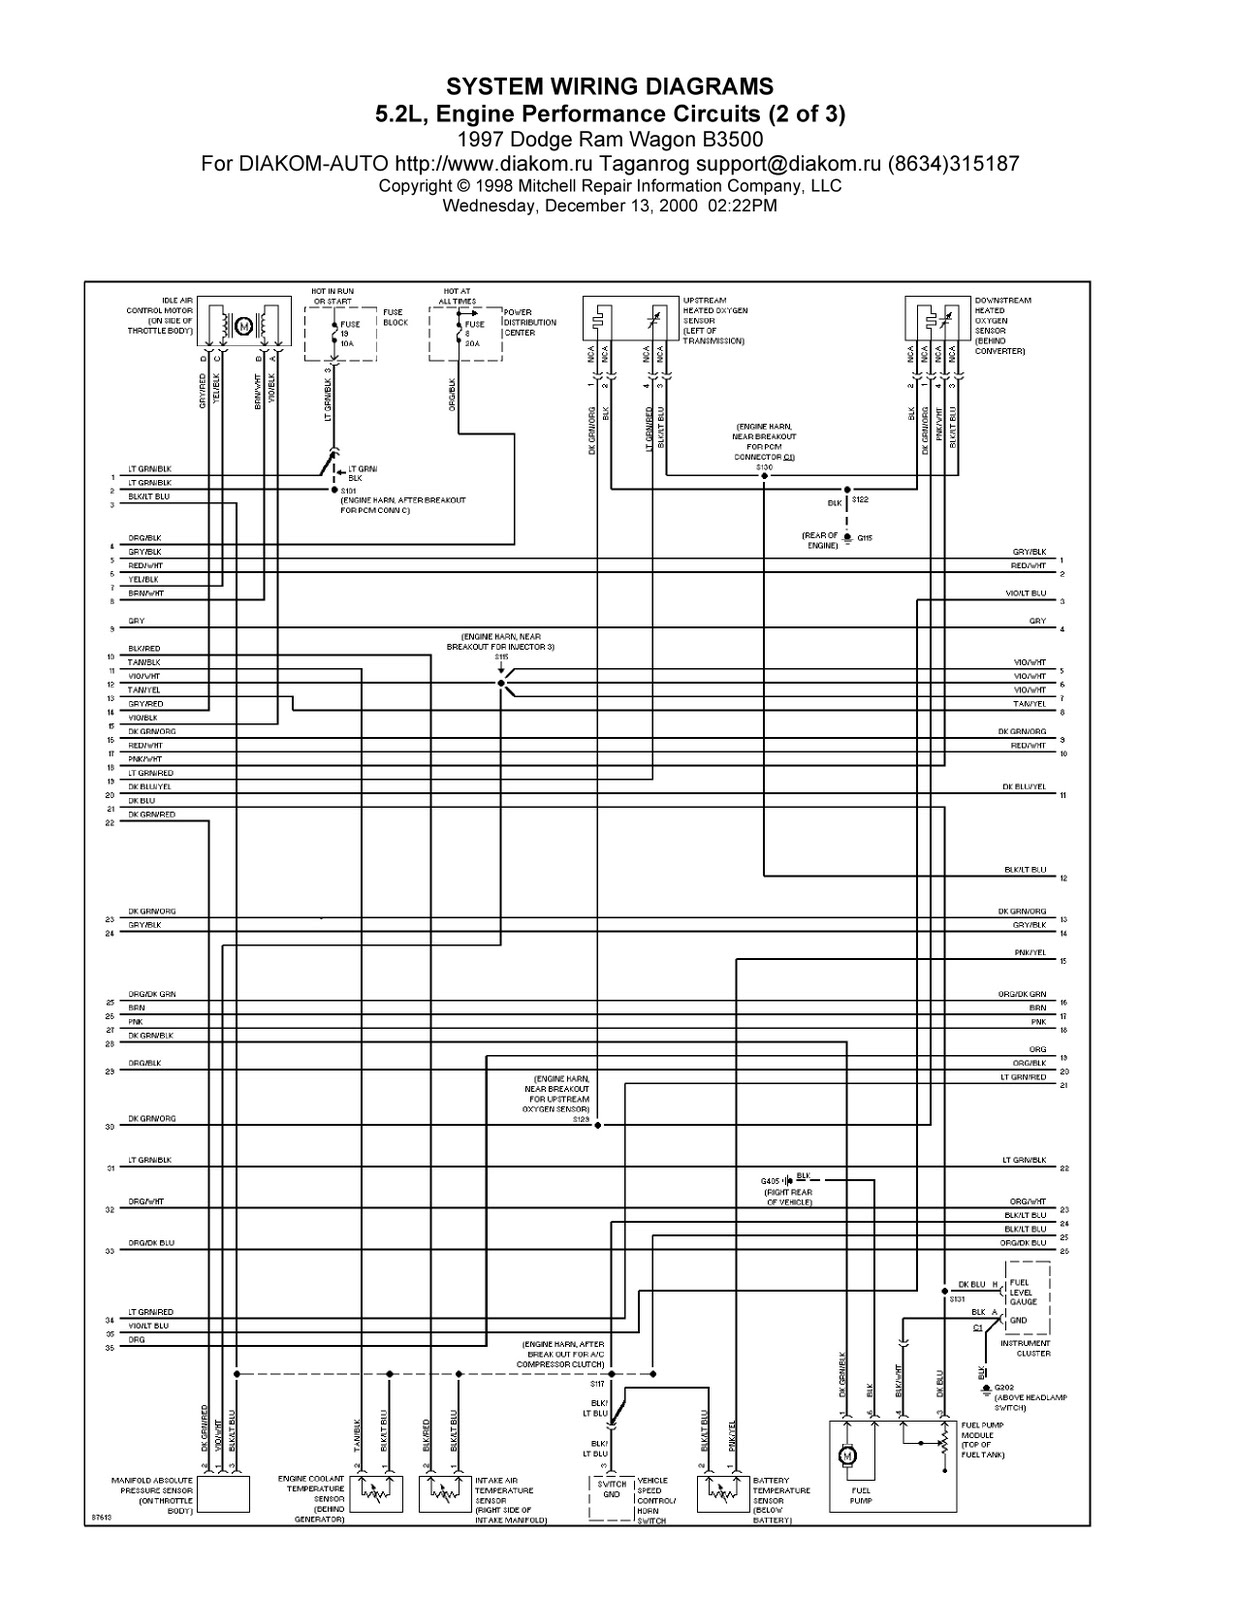 1995 dodge ram 3500 radio wiring diagram images gallery [ 1236 x 1600 Pixel ]